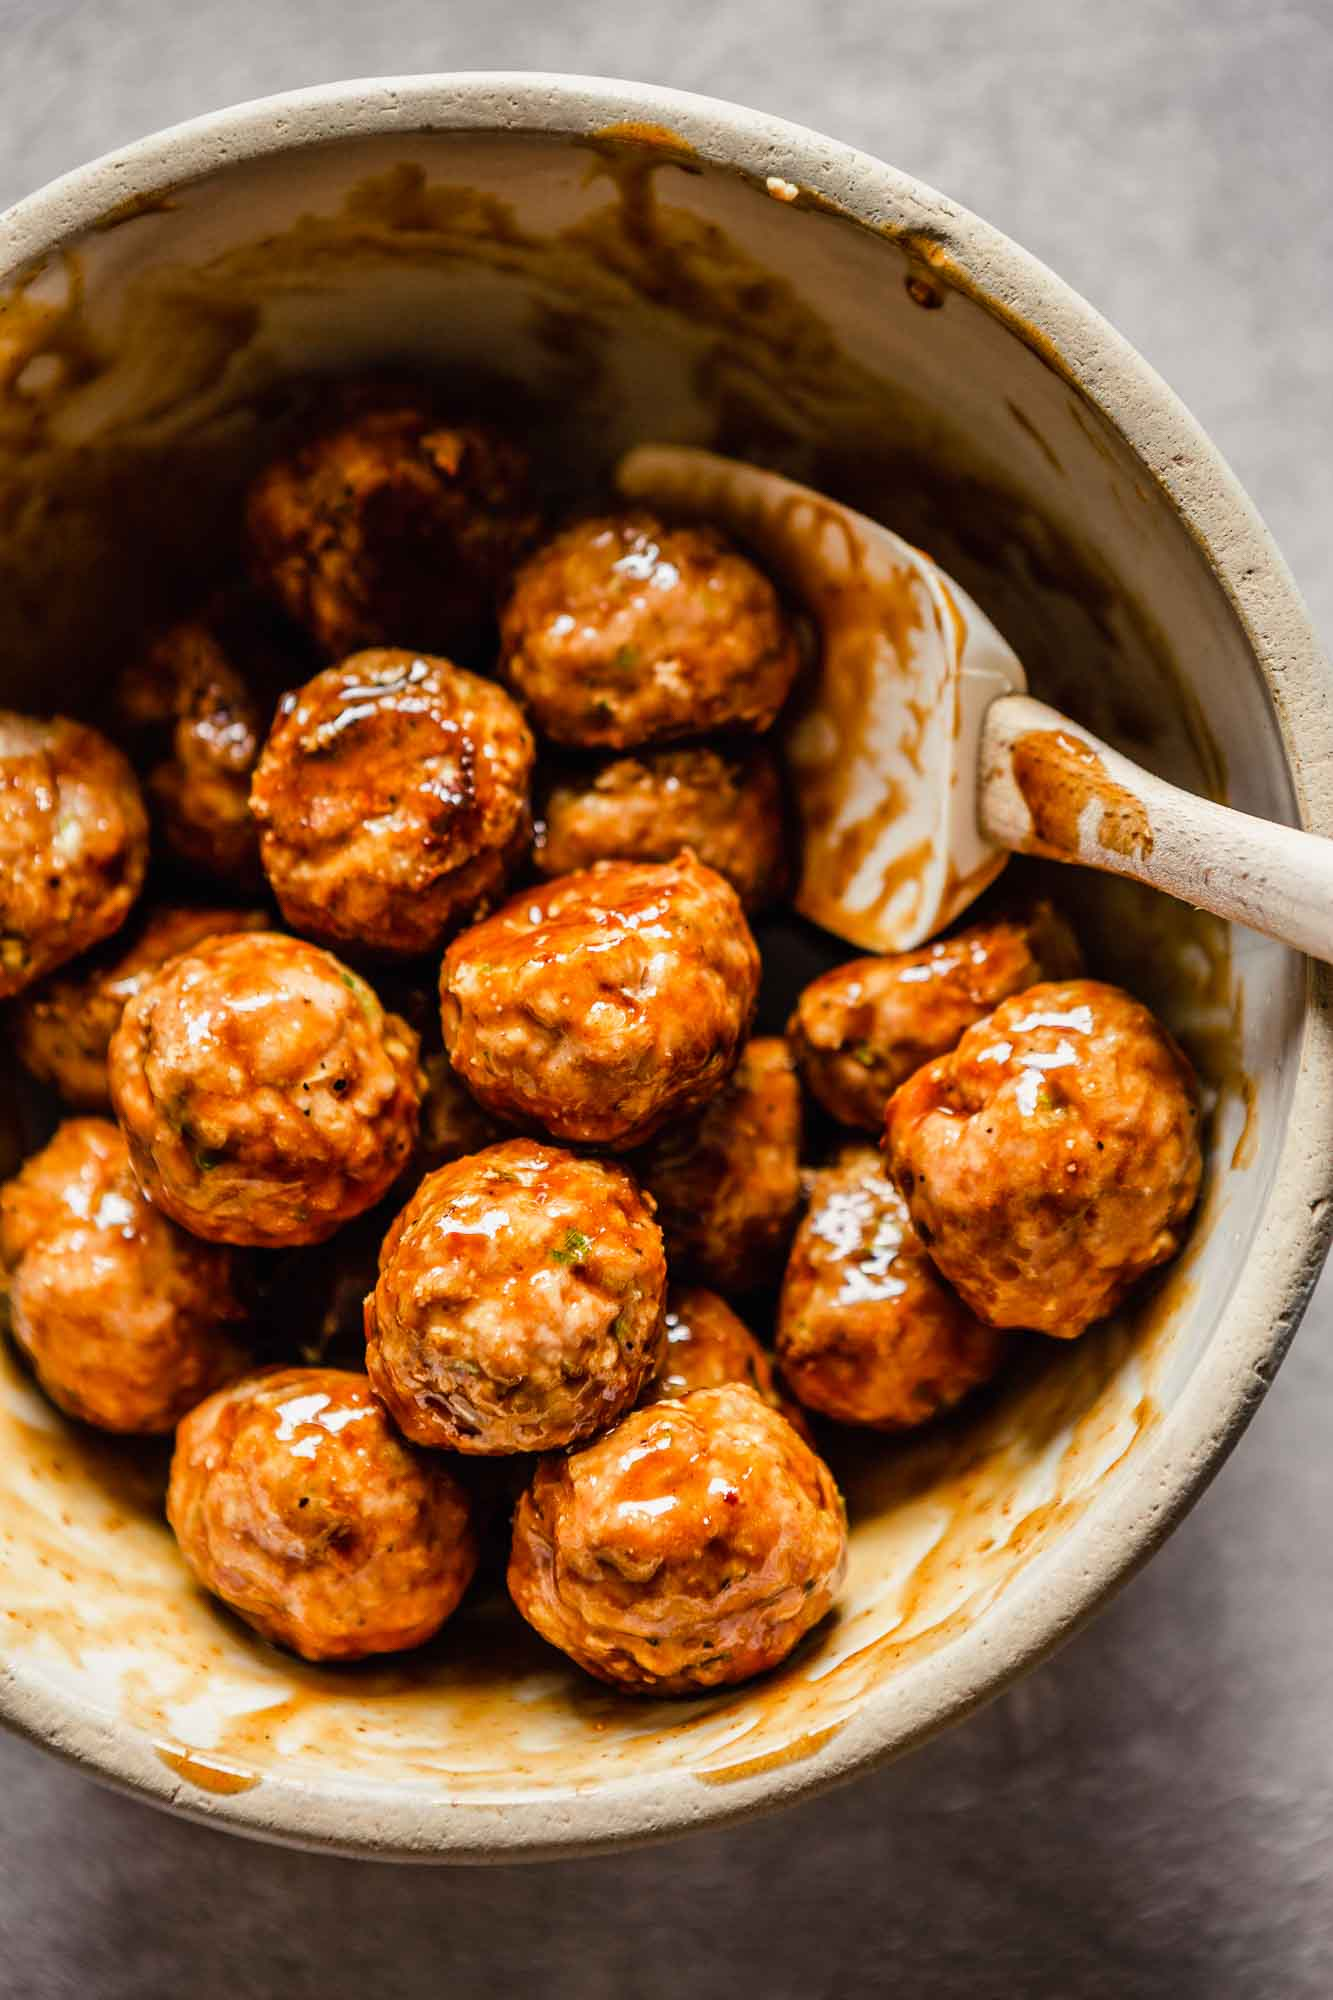 meatballs in a bowl coated in a orange-brown glaze